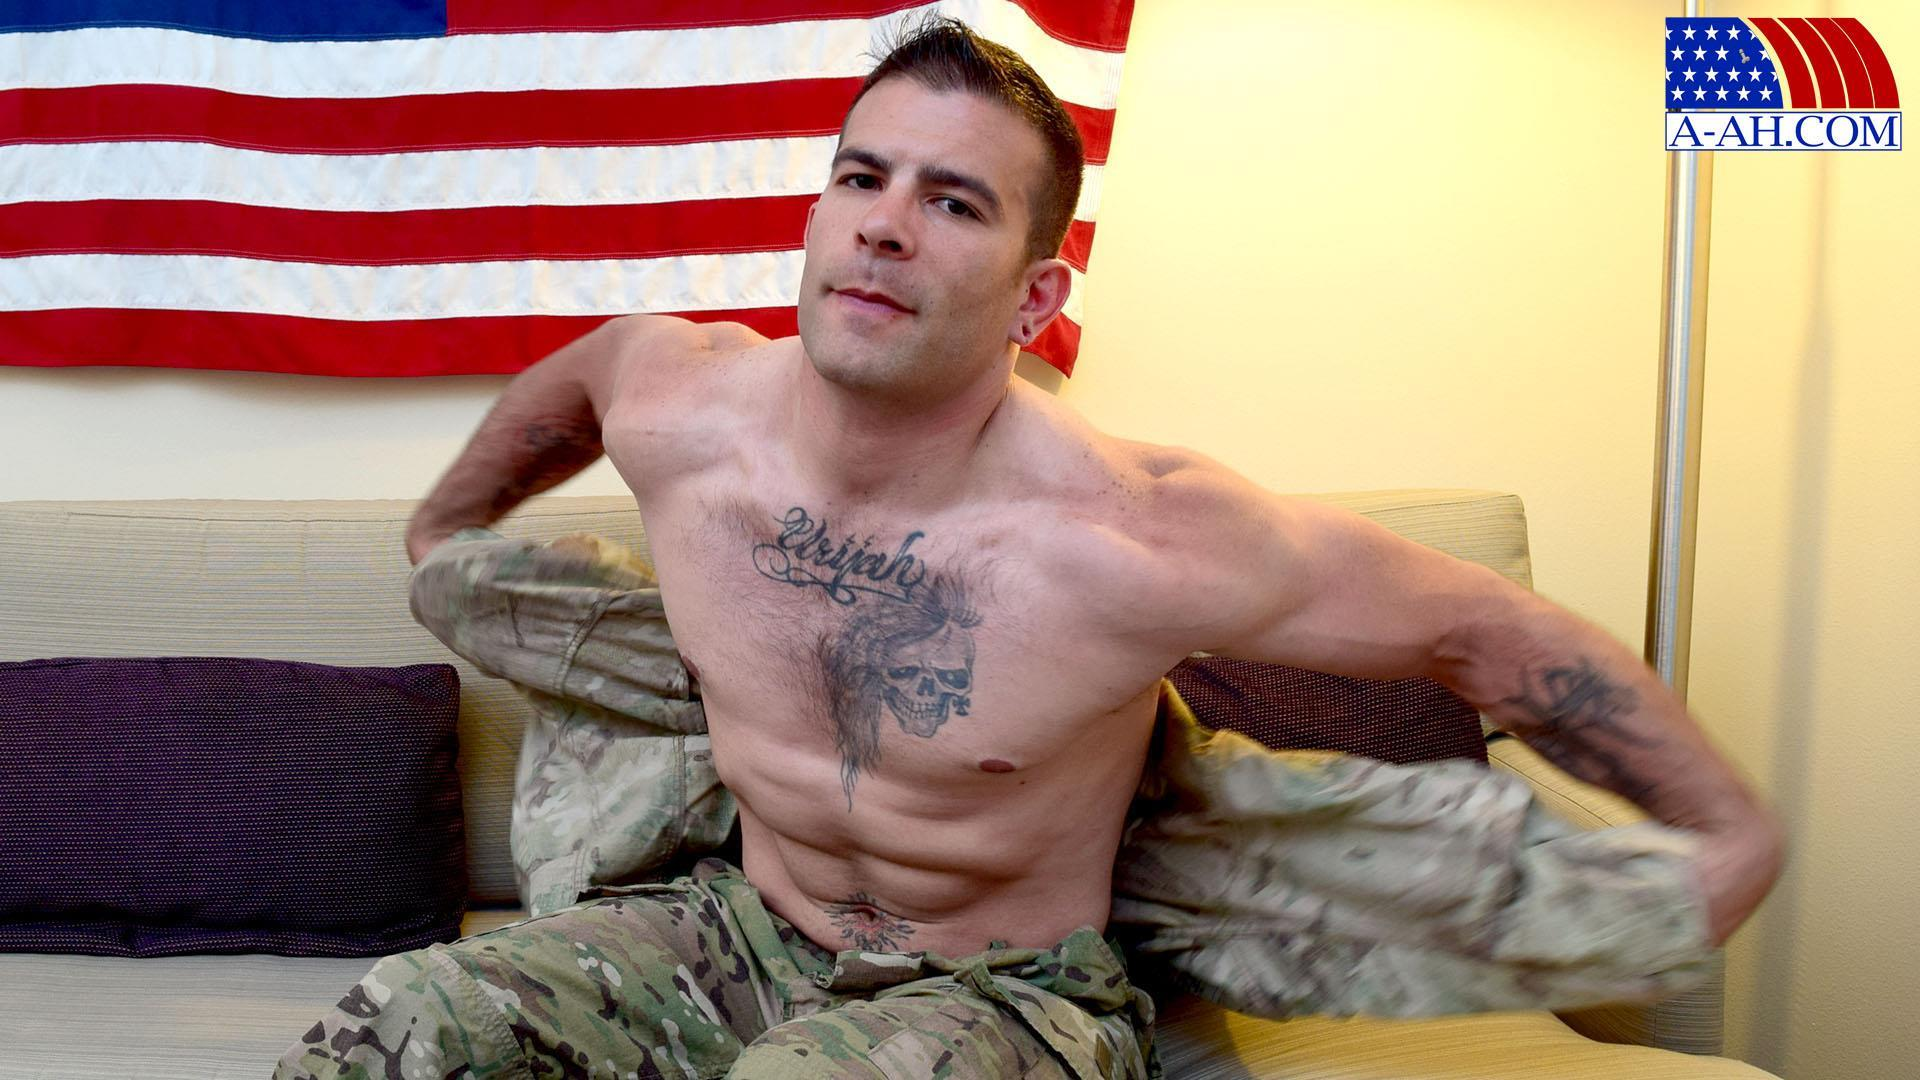 All-American-Heroes-JB-US-Amry-Soldier-Jerking-His-Big-Uncut-Cock-Amateur-Gay-Porn-01.jpg